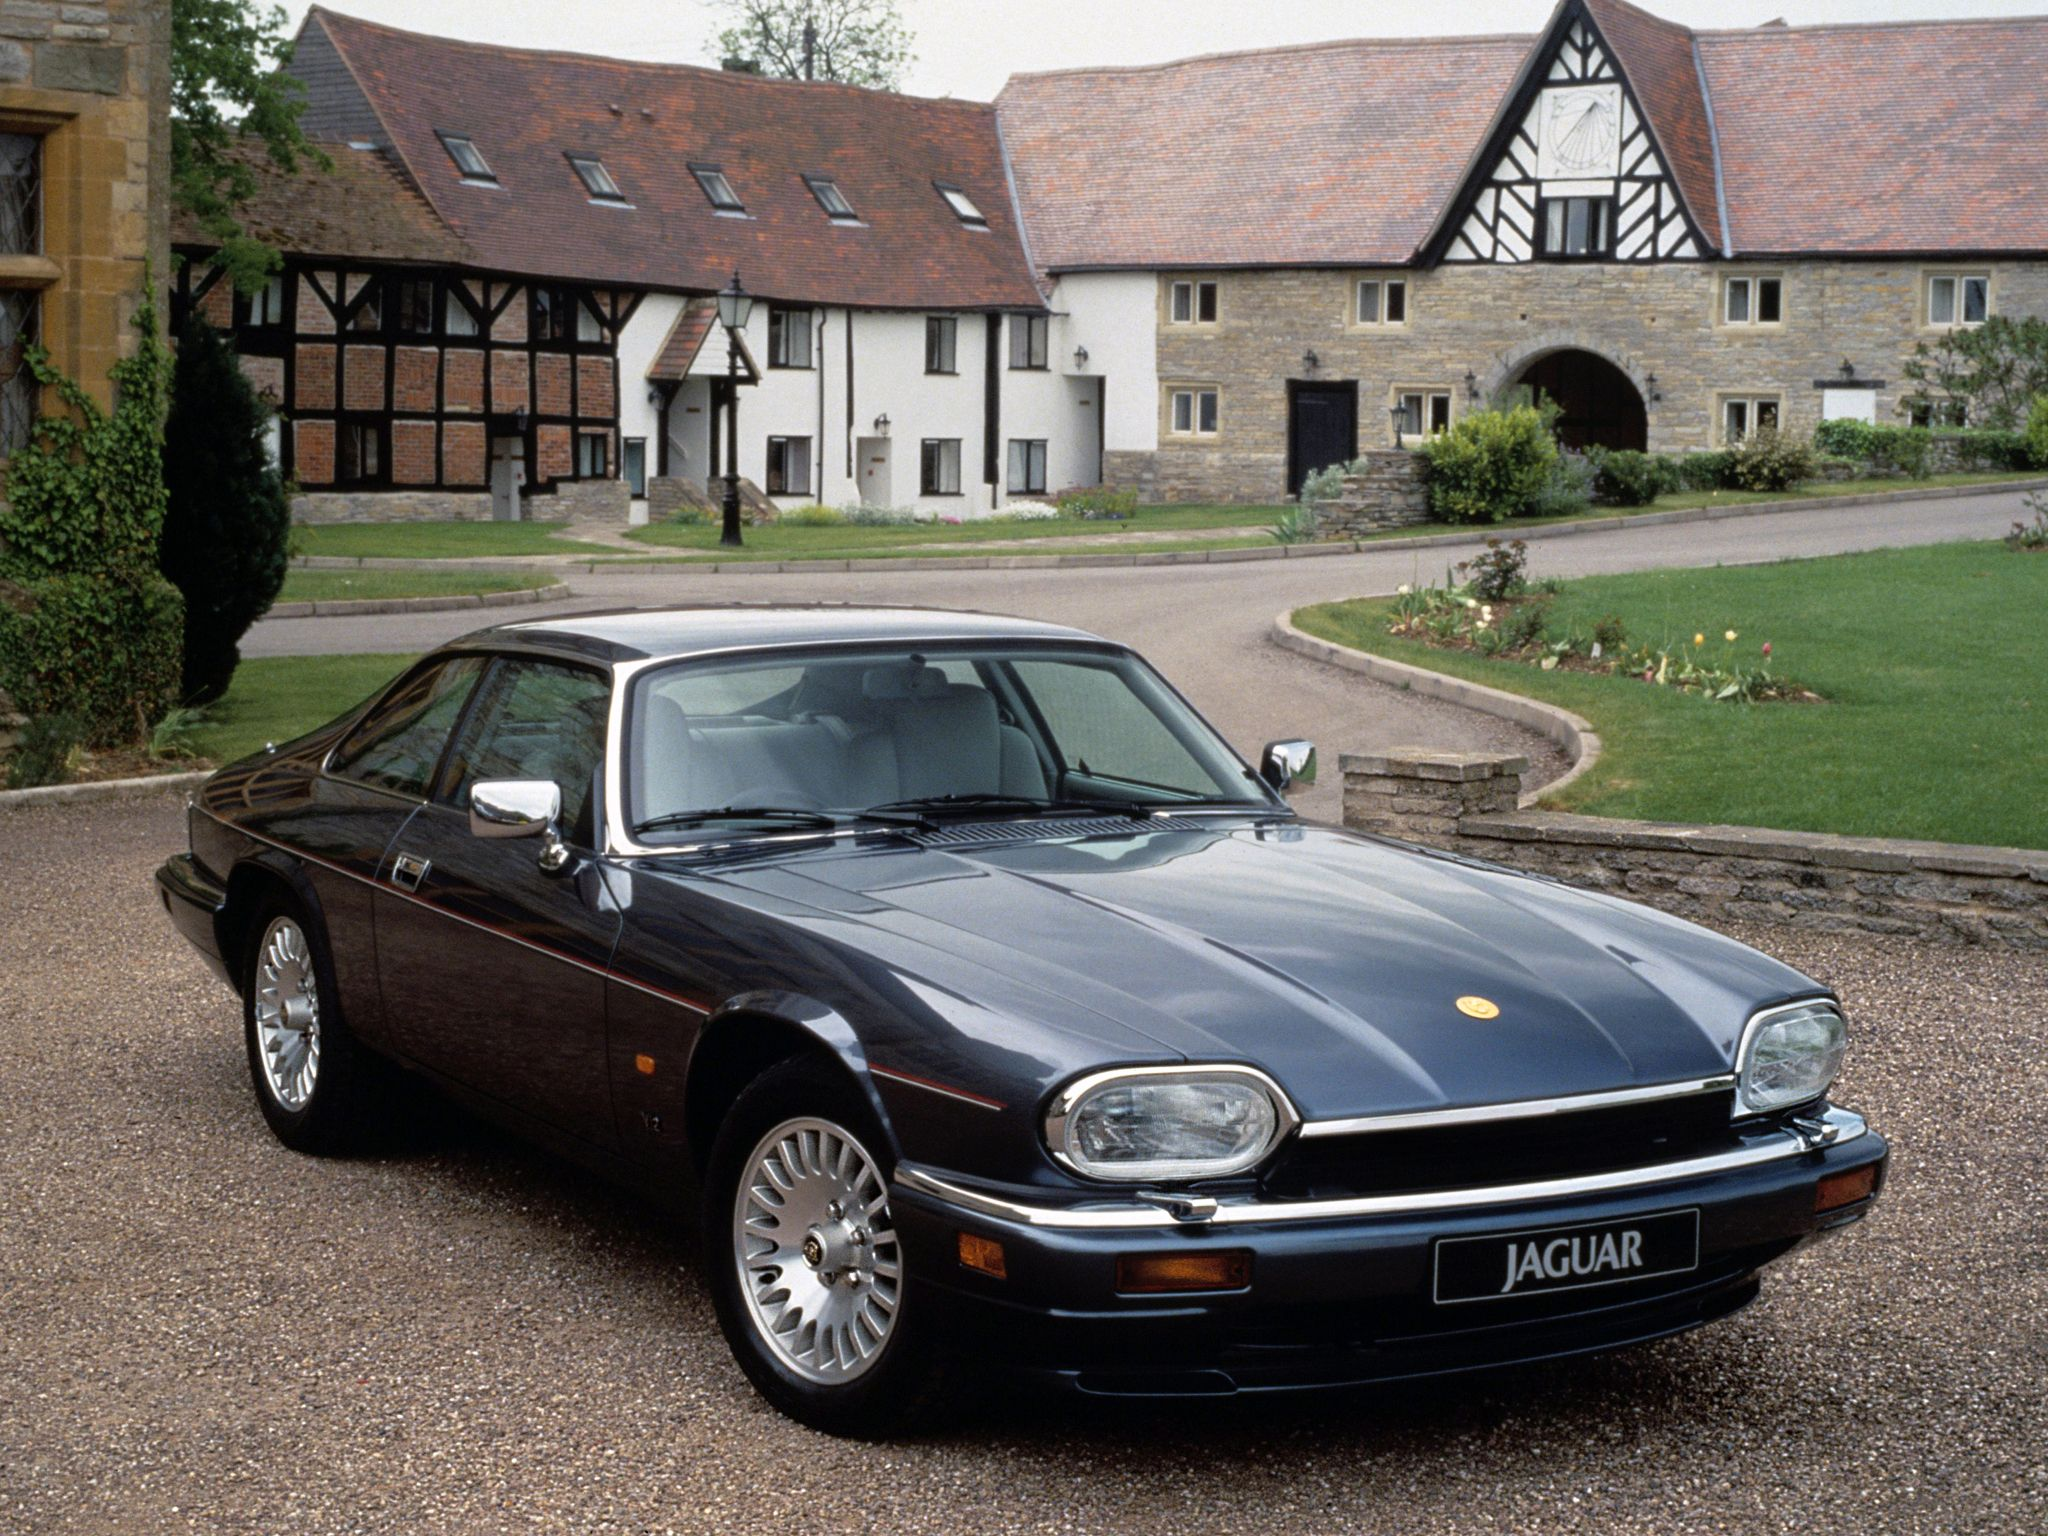 8d59f243ff67e0ceff9dd25e5a8d7592 Take A Look About 1990 Jaguar Xj6